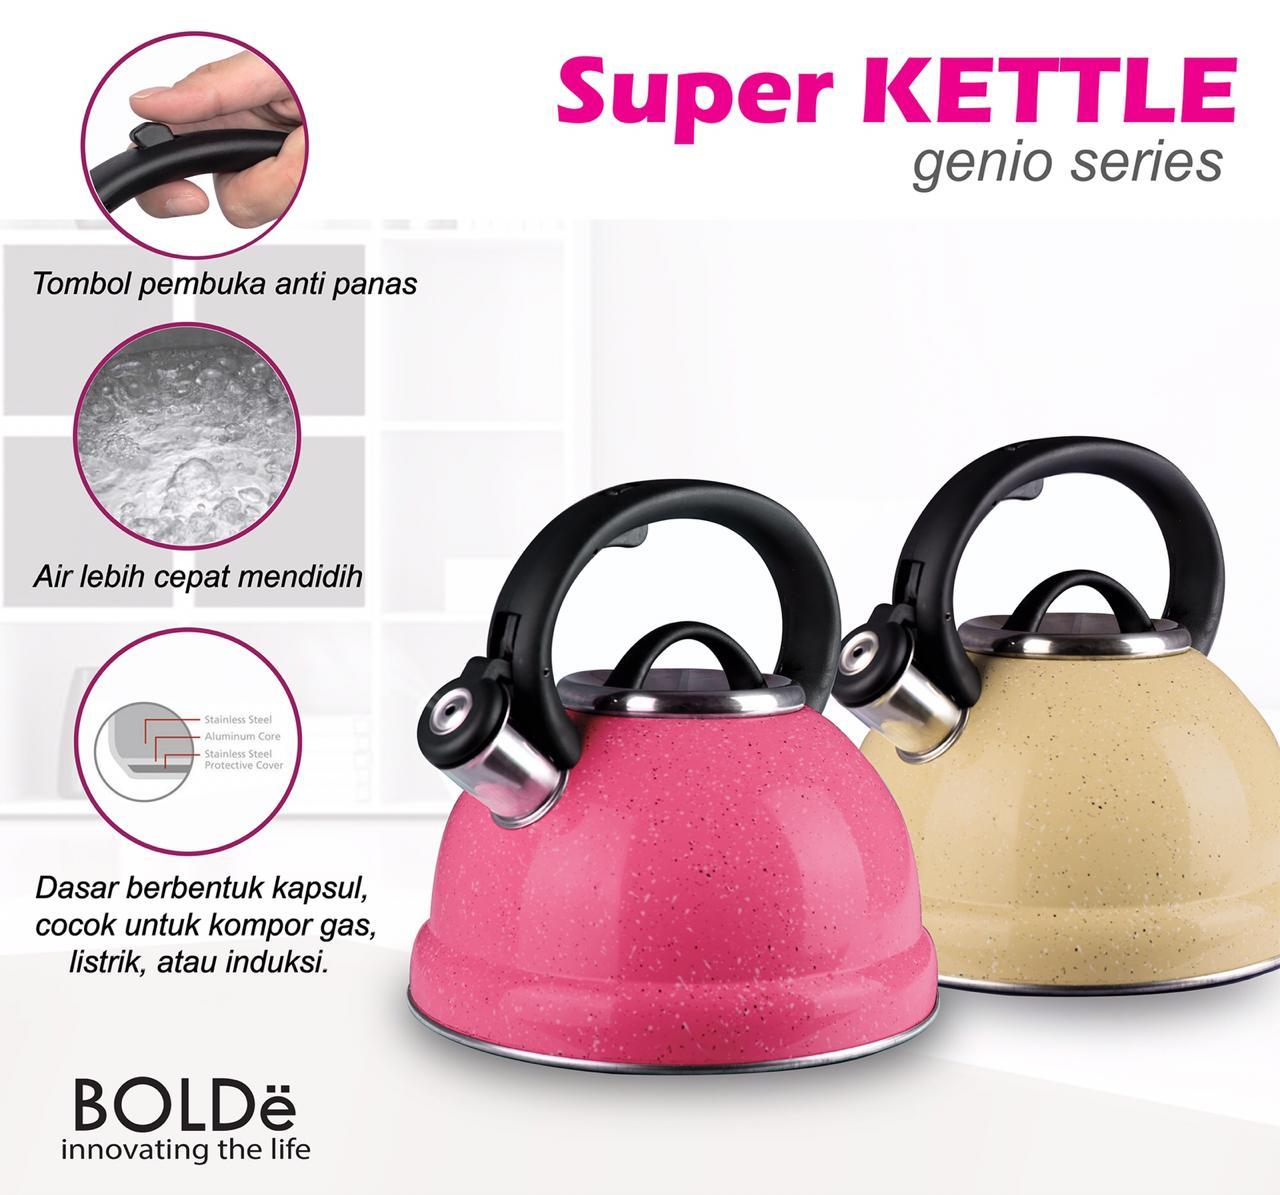 Bolde Super Kettle Genio Series Teko Pemanas Air